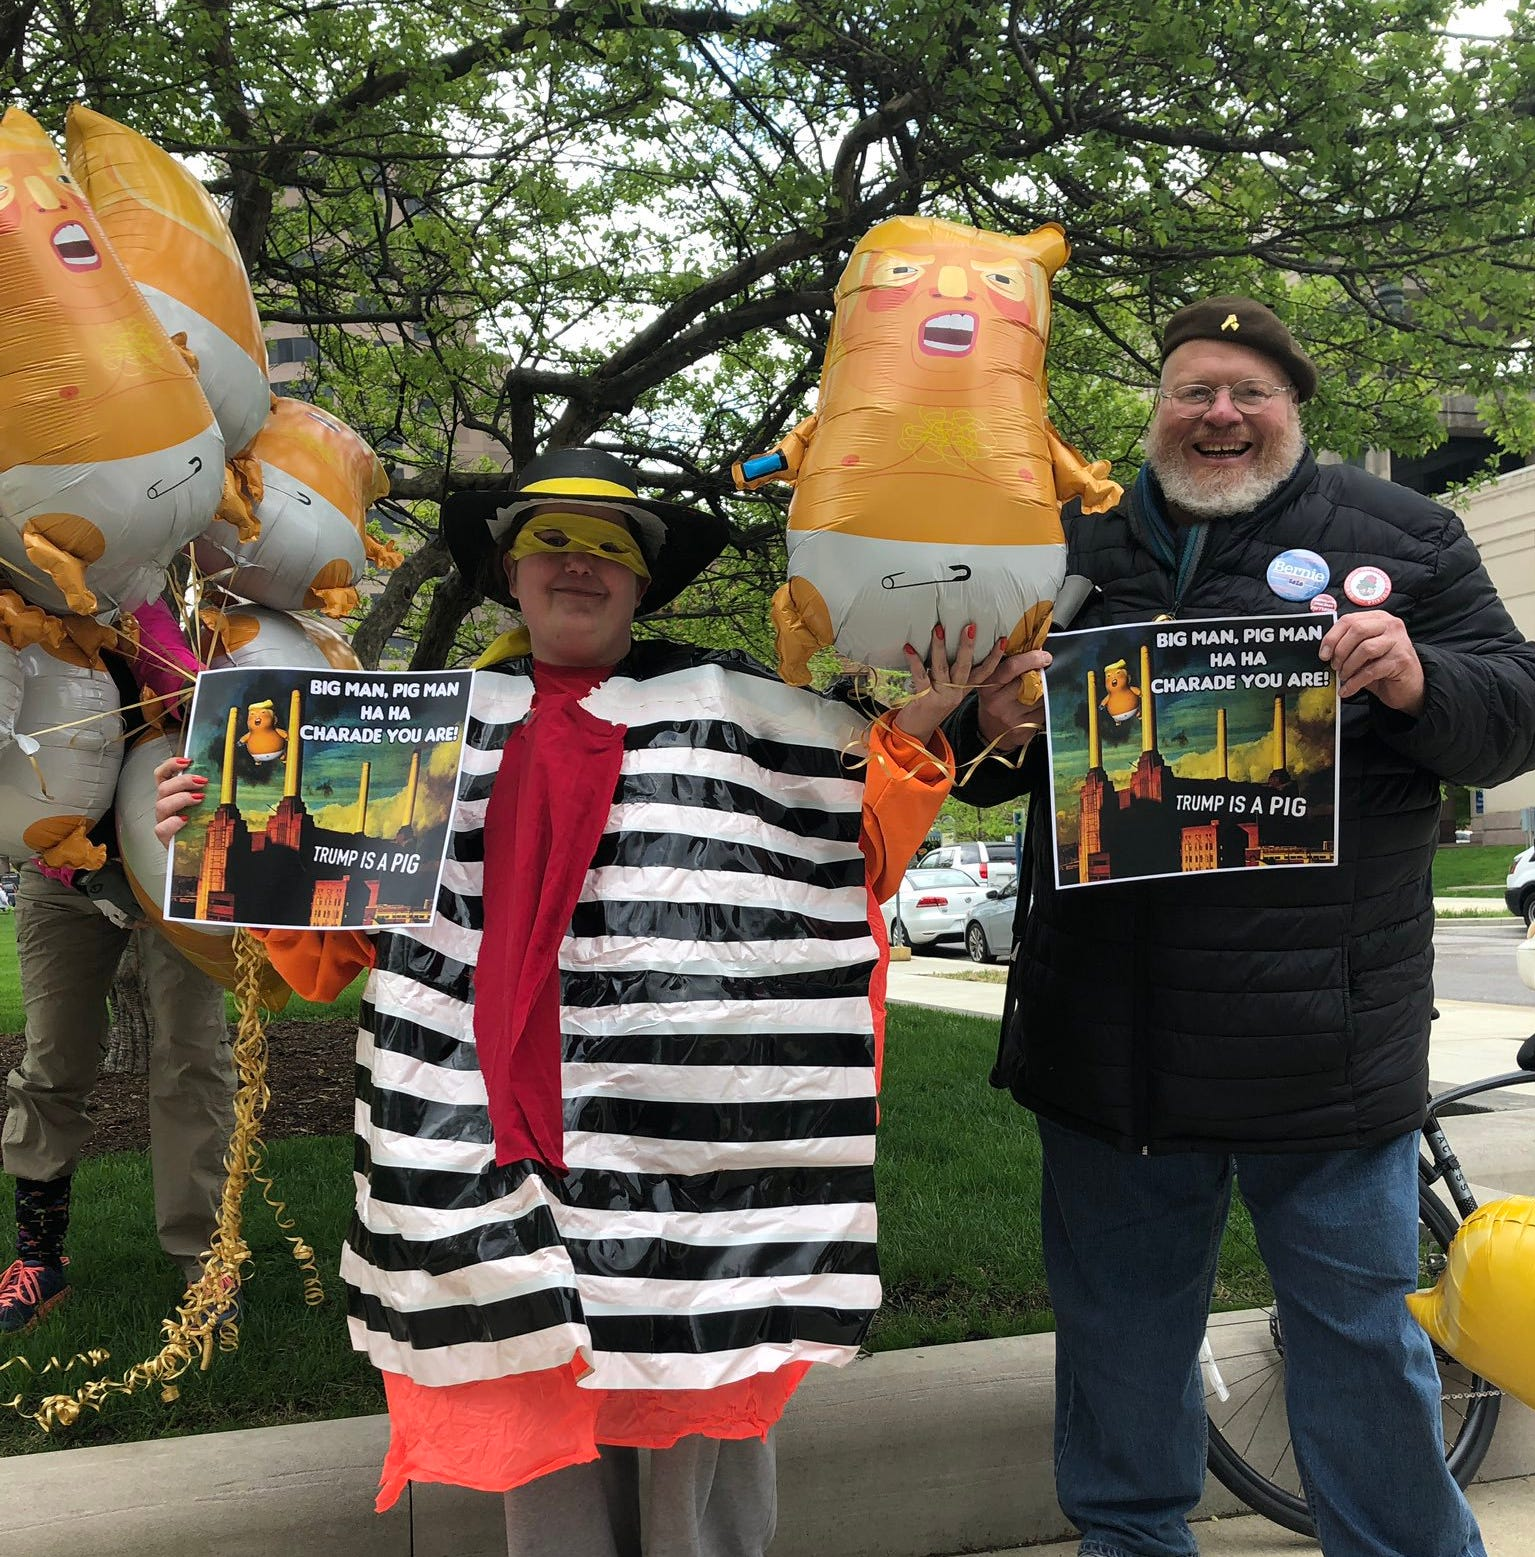 At Indy NRA convention protest: 'Baby Trump' balloons, a Hamburglar and fears of 'creeping fascism'